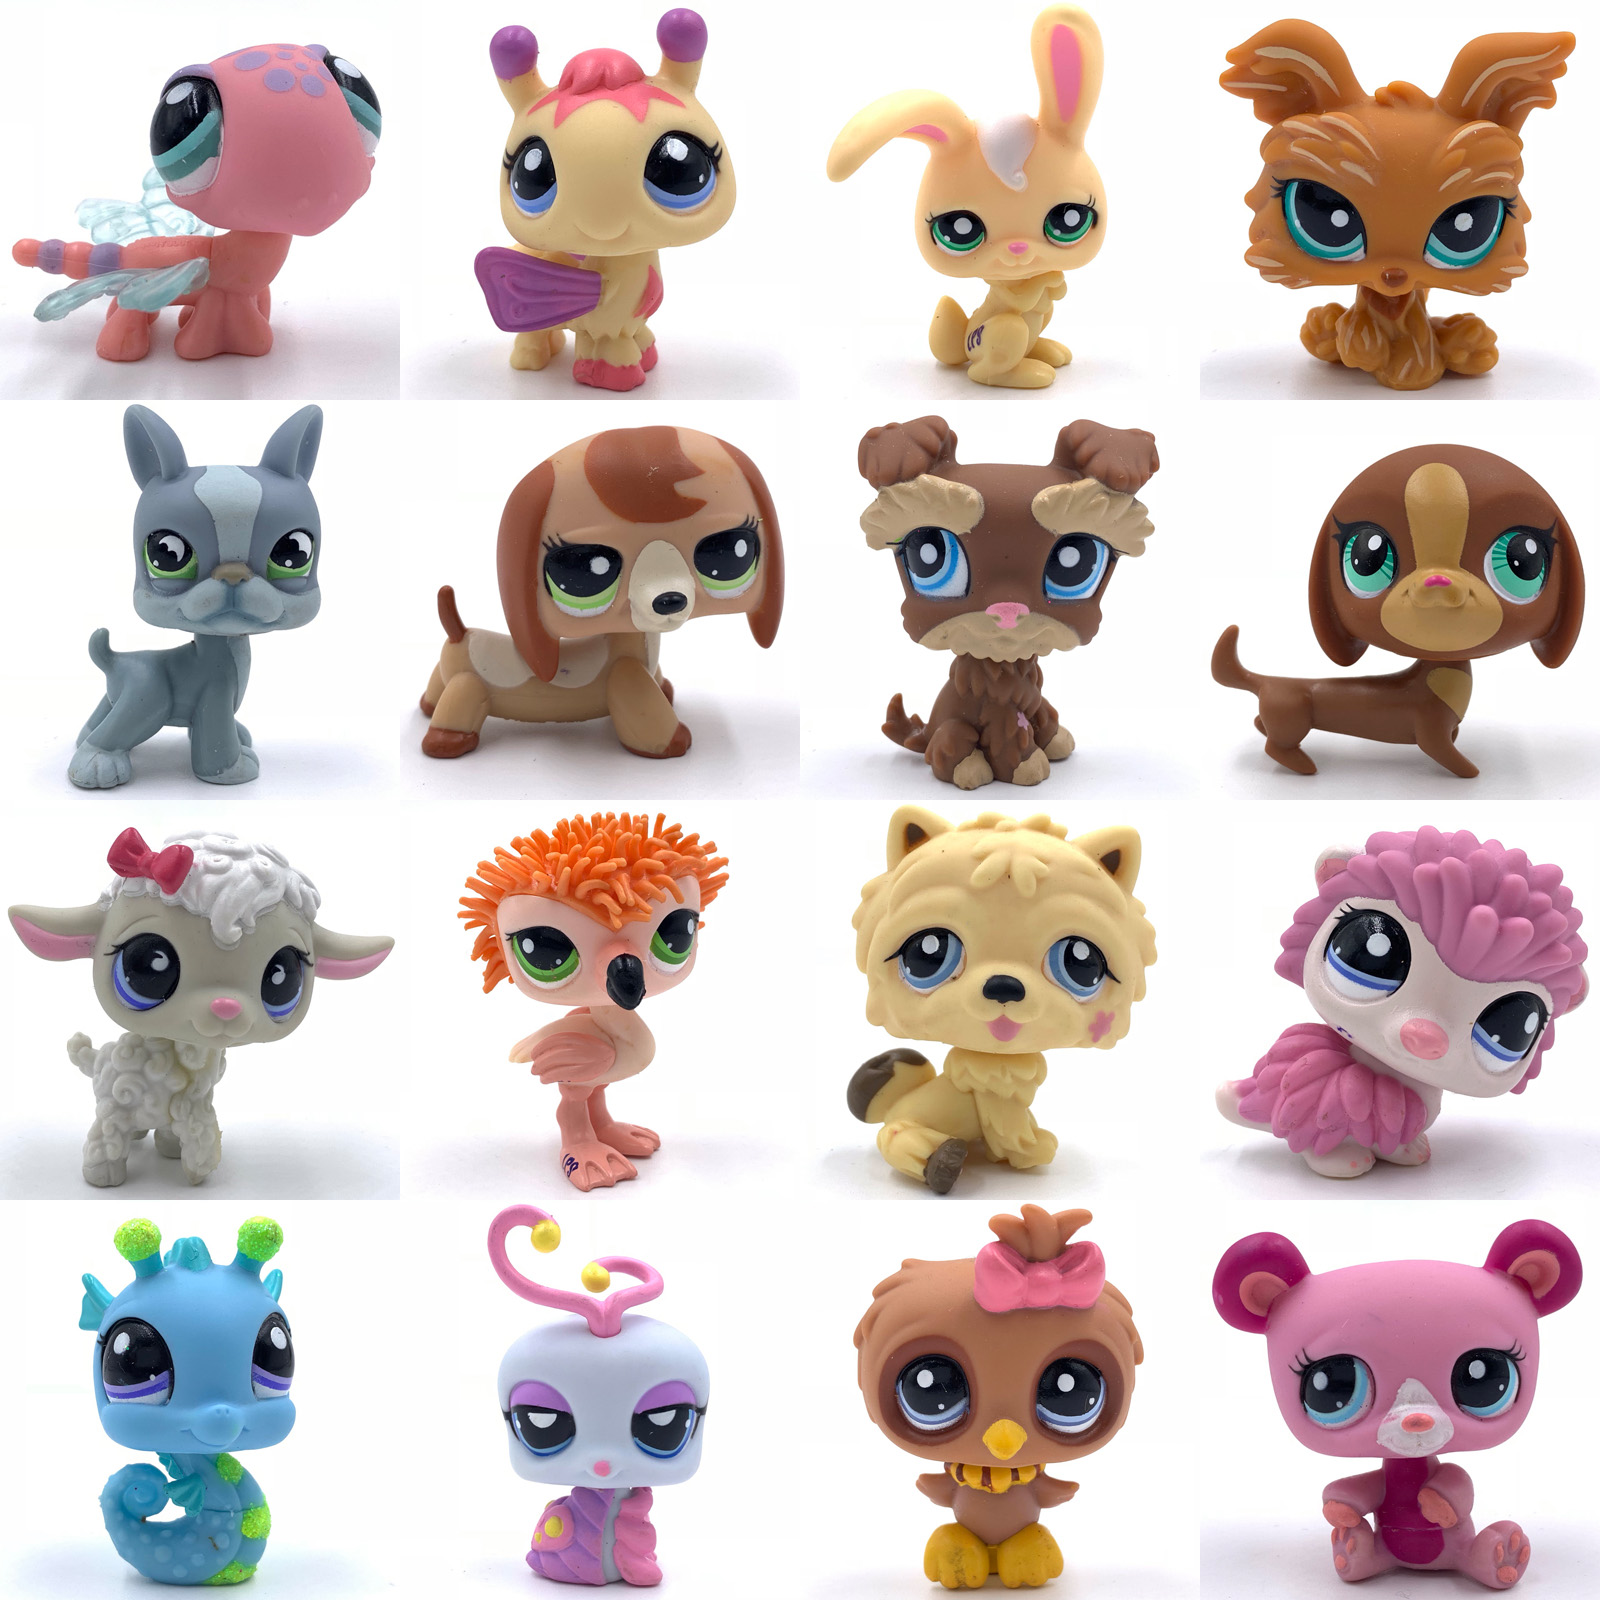 Rare Pet Shop Toys Cute Animal Toy Bird Flamingo Hedgehog Dragonfly Rabbit Puppy Old Original Animal Collection Toy For Girl